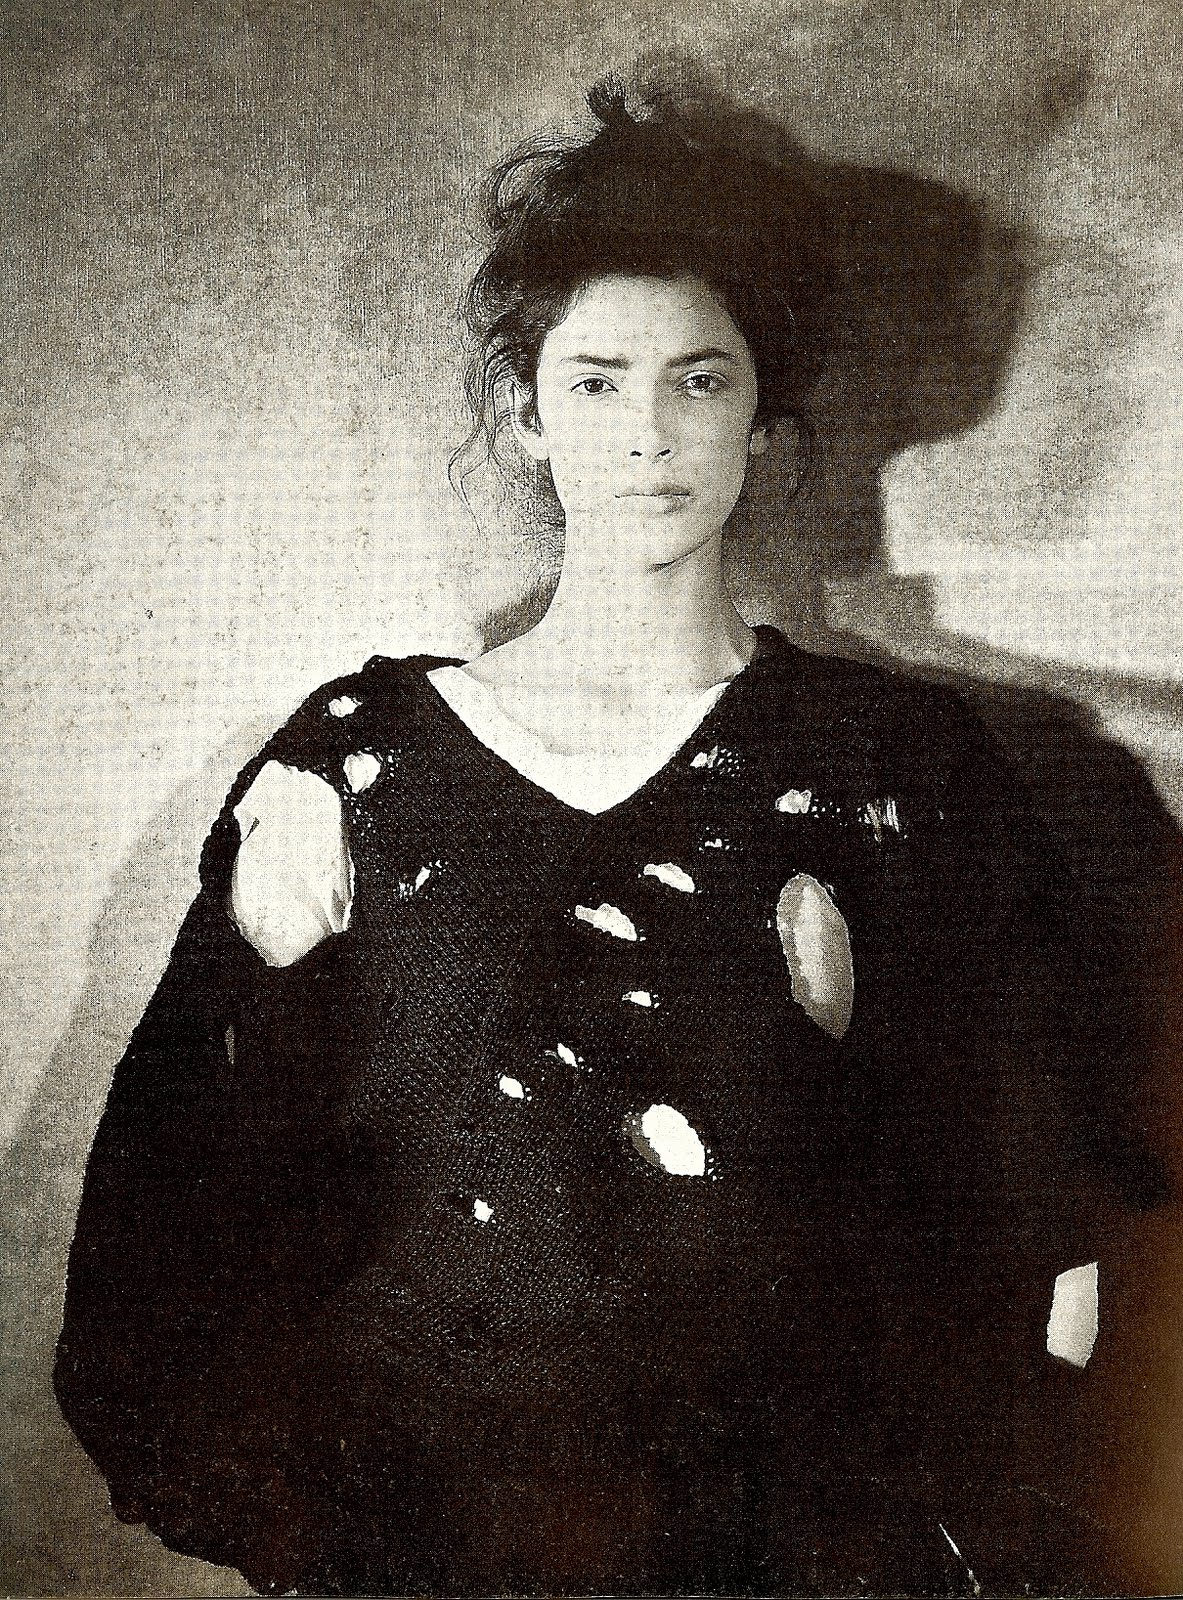 The designer's 'lace' sweater from 1982 - the seemingly random pattern of holes provides a commentary on the demise of handicraft in an era of machine-made perfection.